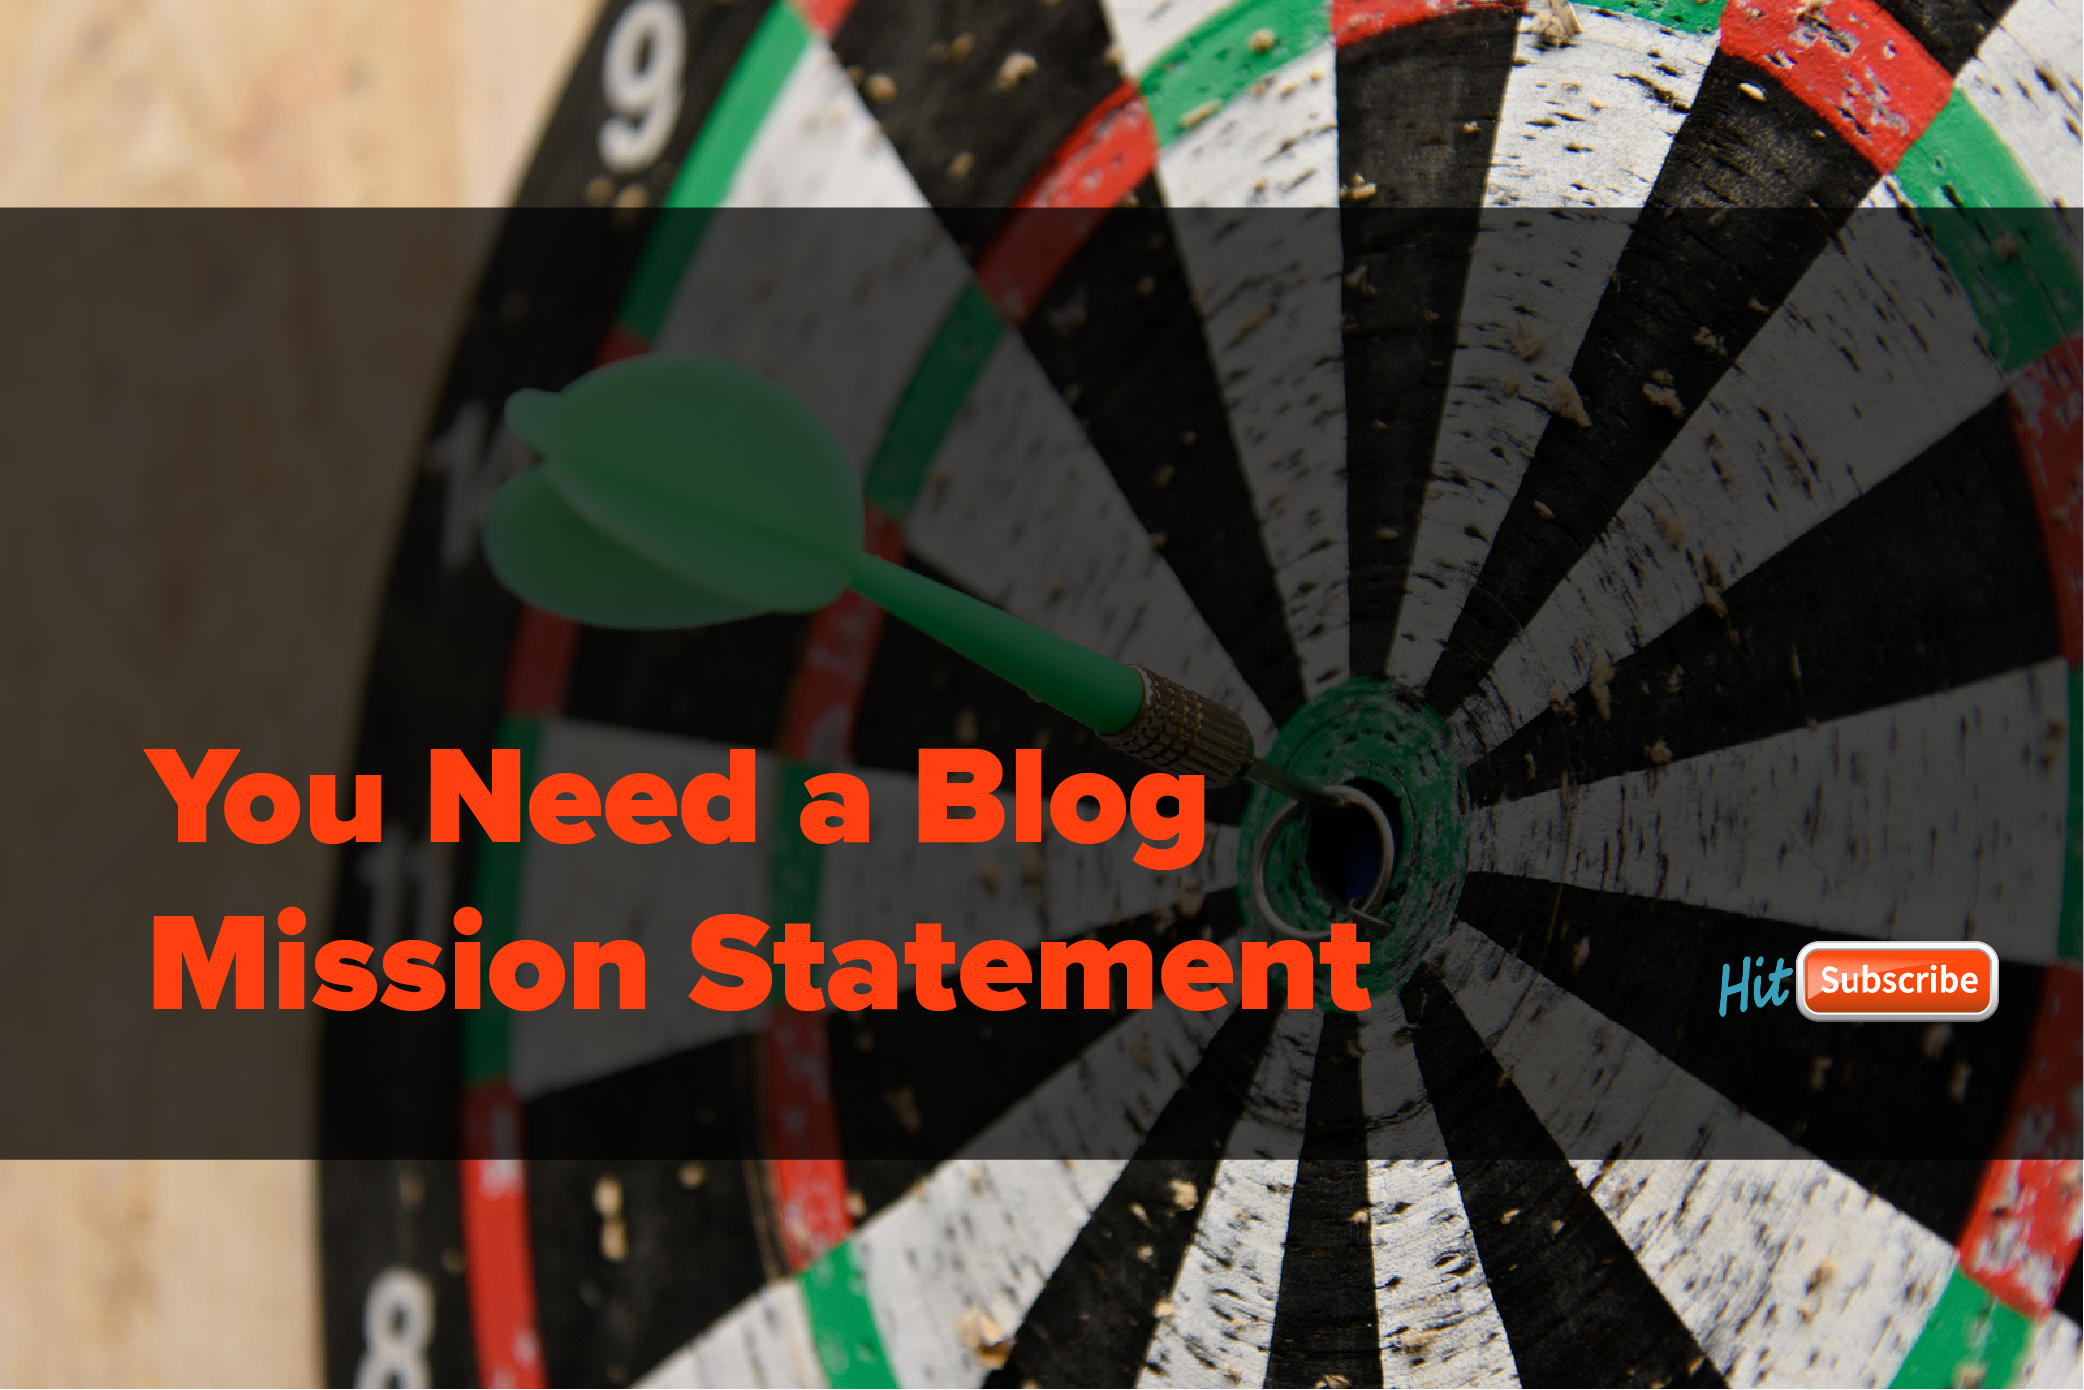 You Need a Blog Mission Statement